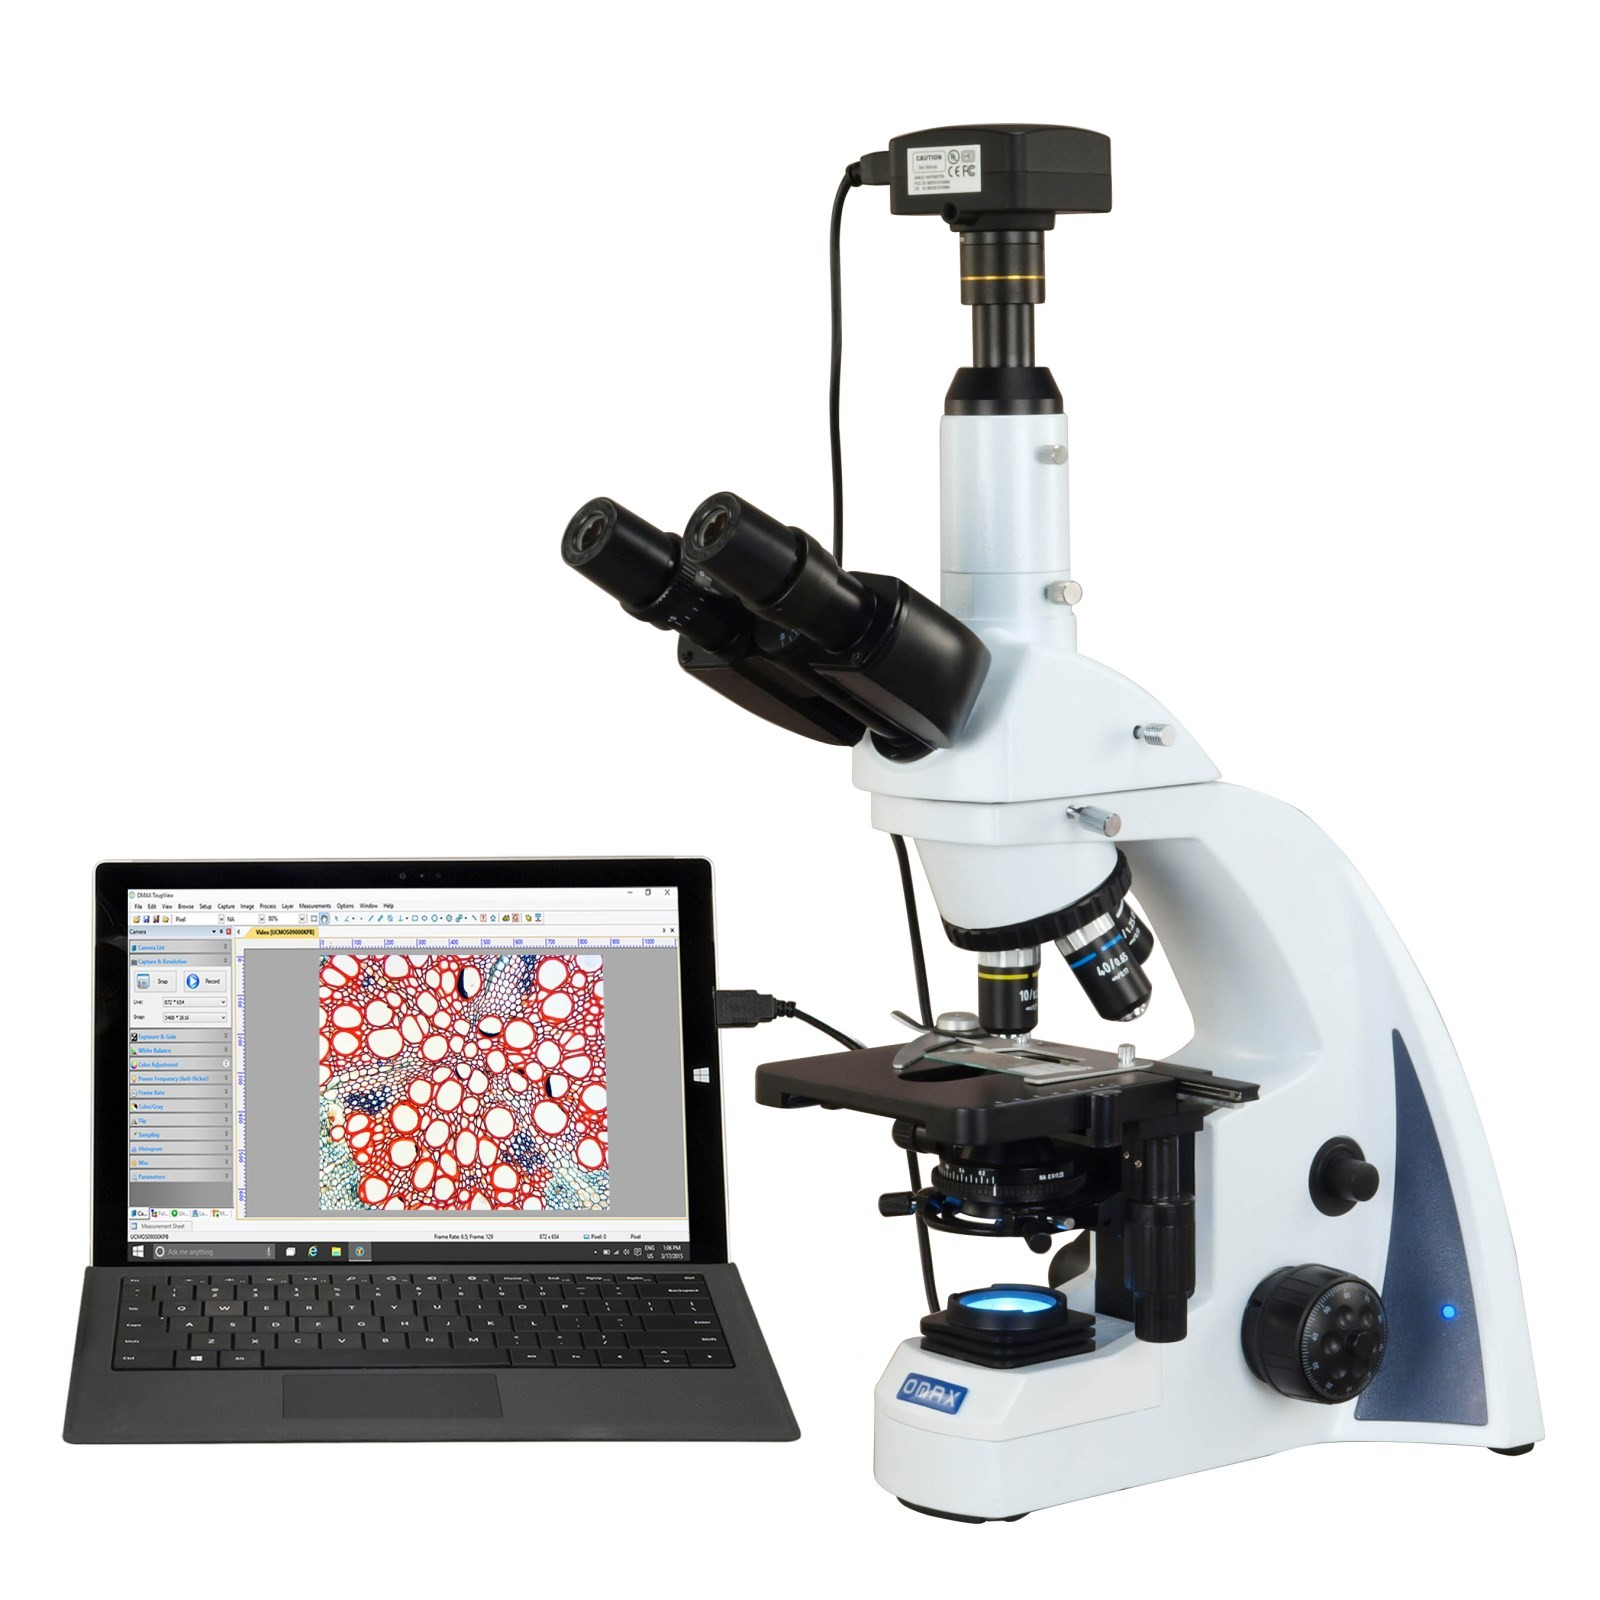 OMAX 40X-2500X USB3 14MP PLAN Infinity Trinocular Siedentopf LED Lab Compound Biological Microscope